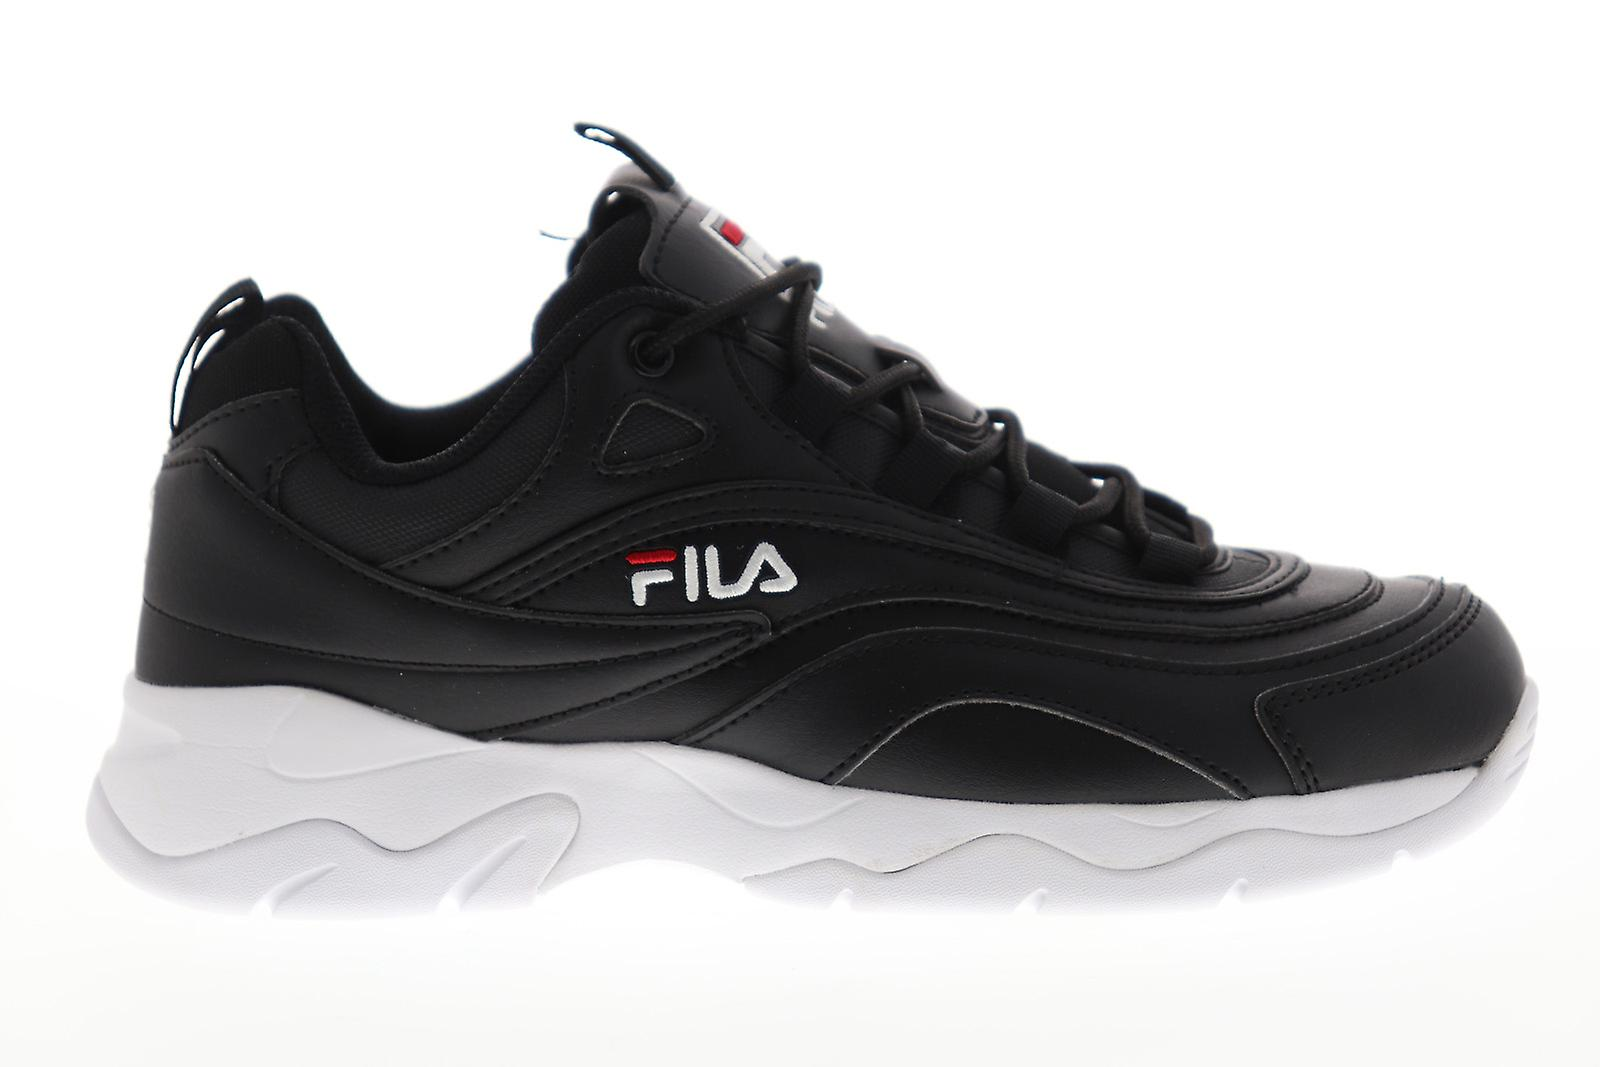 Fila Ray Womens Black Casual Lace Up Low Top Trampki Buty